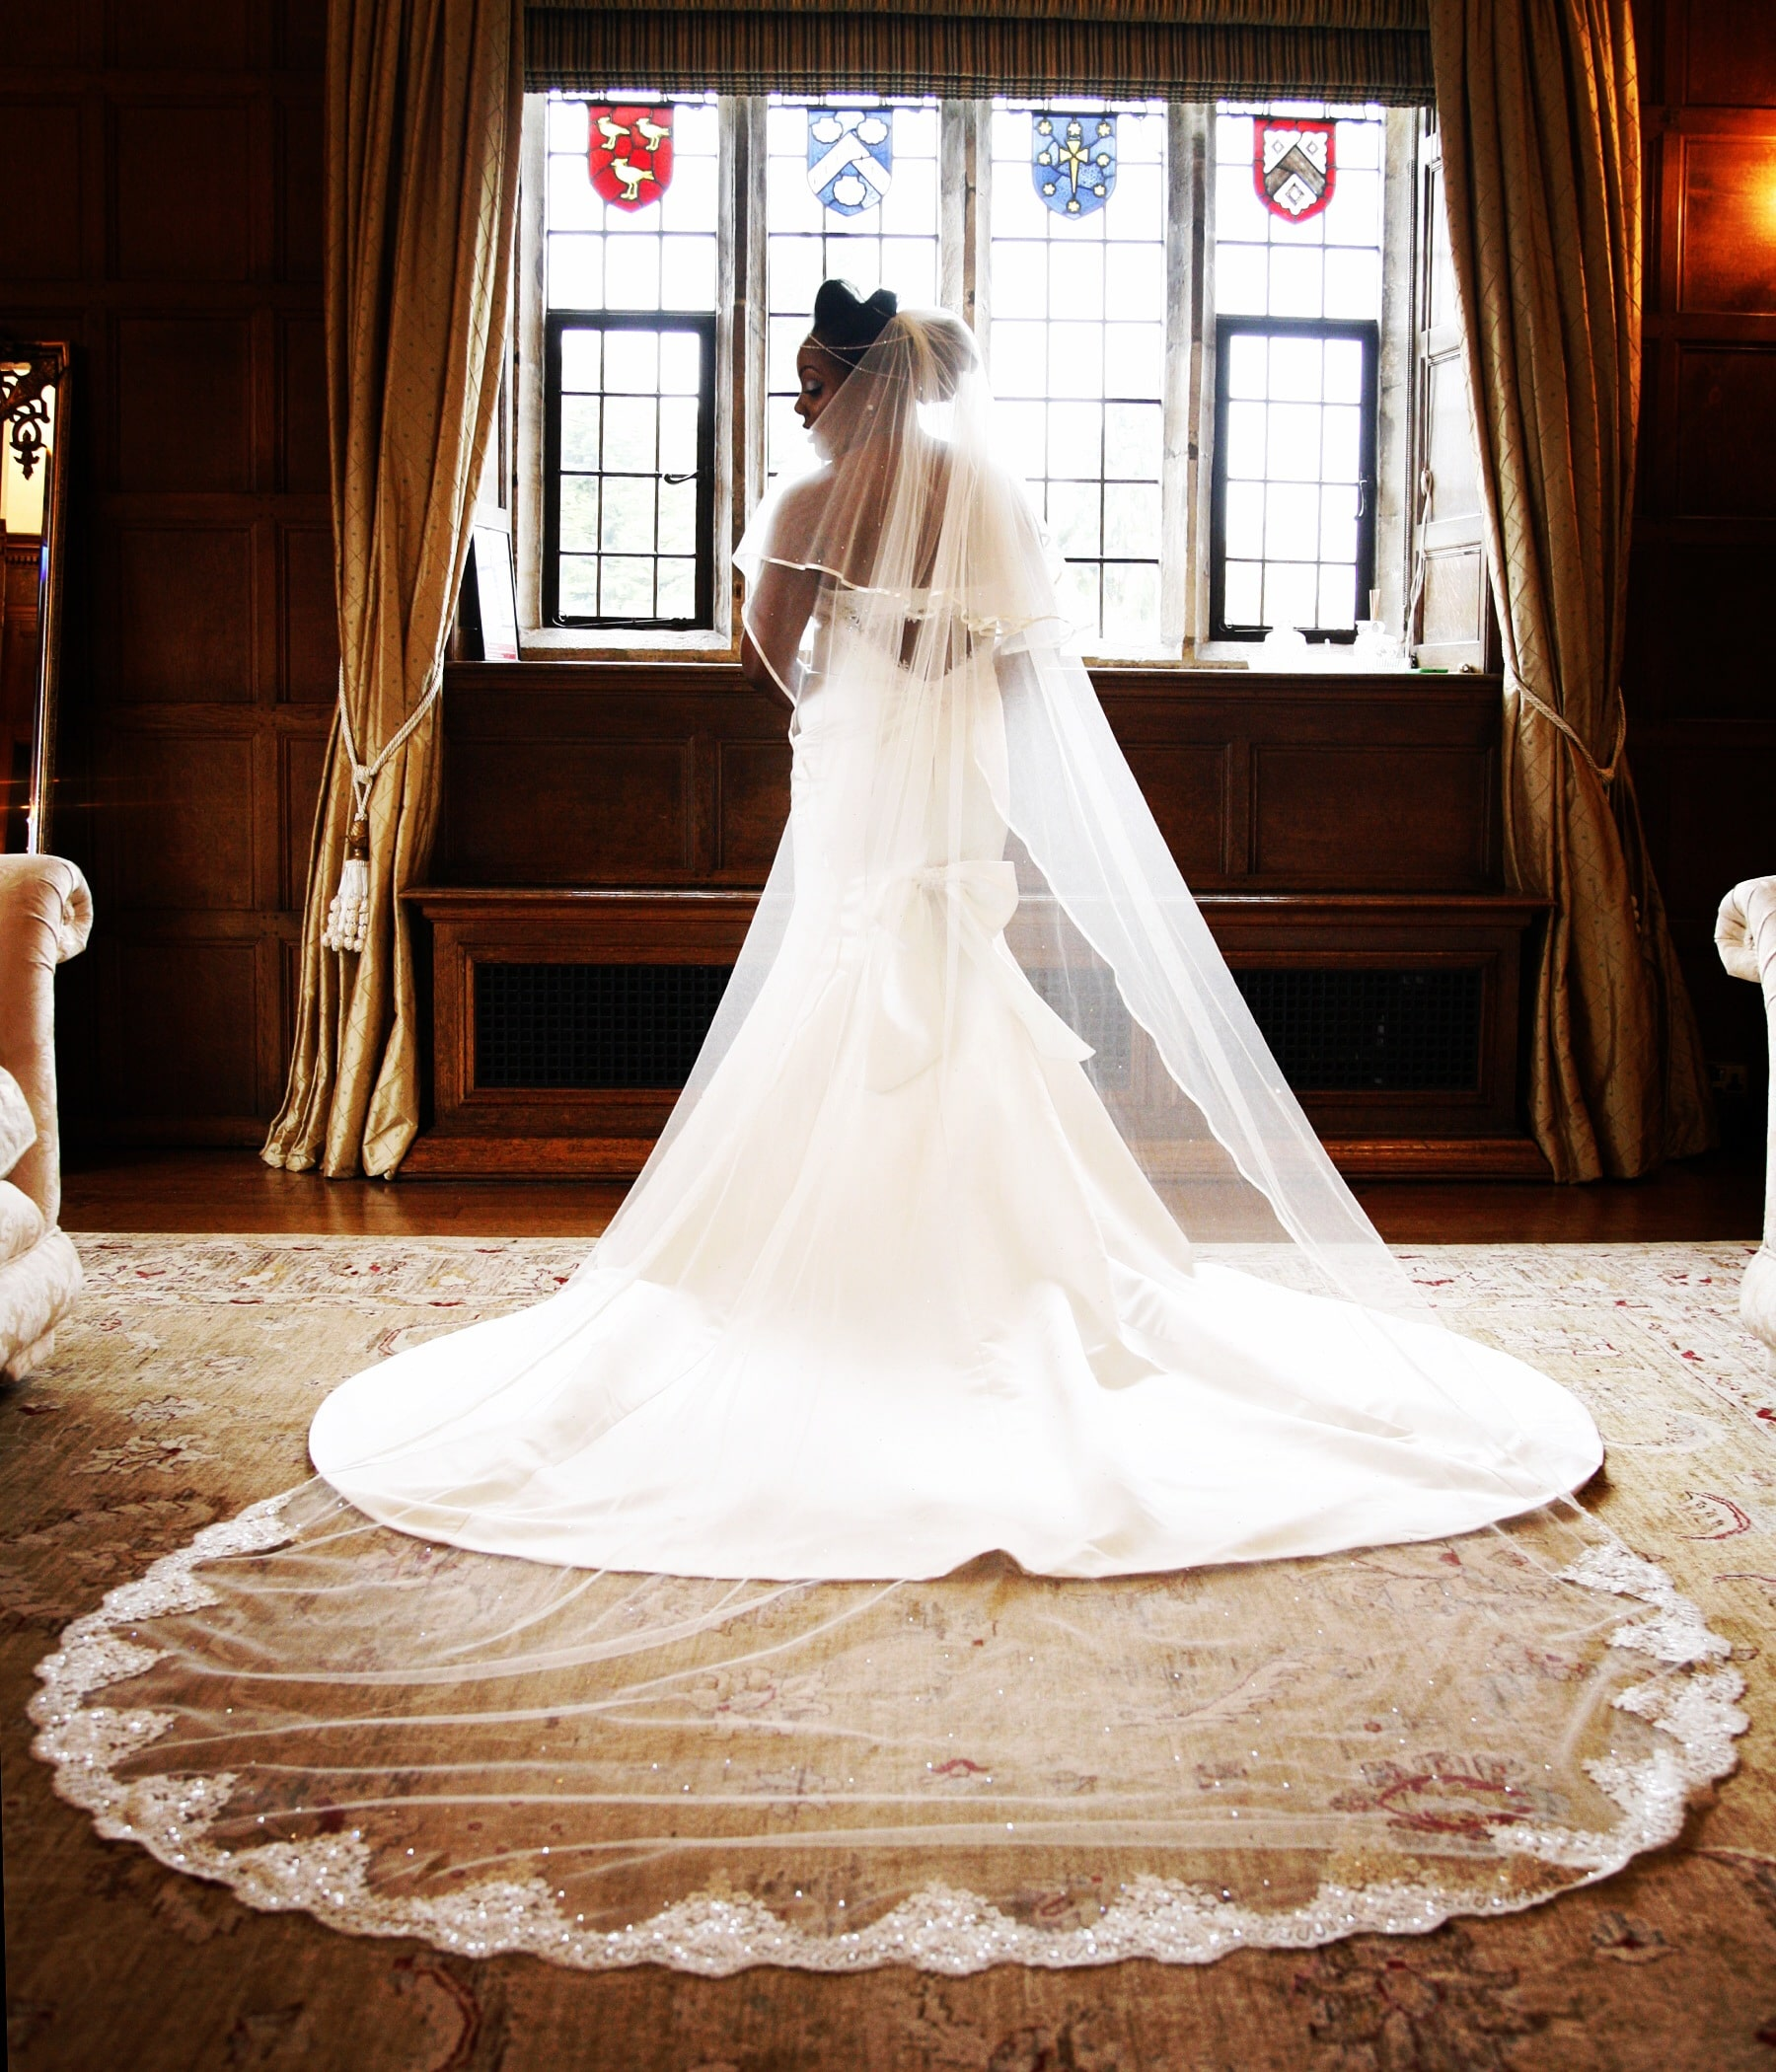 Sparkly lace bottom veil in cathedral length